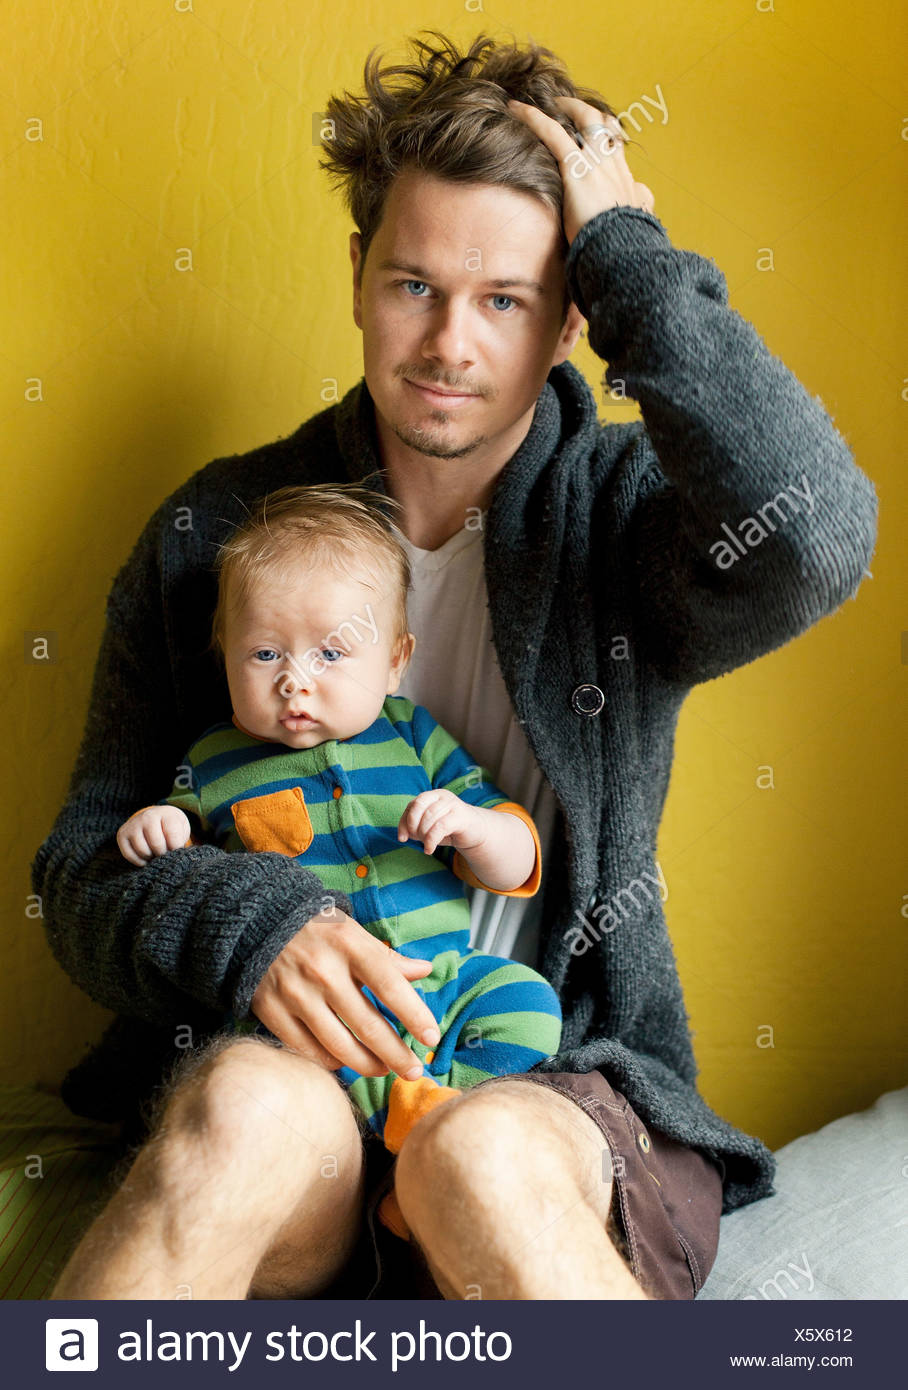 Tired father holding baby boy - Stock Image